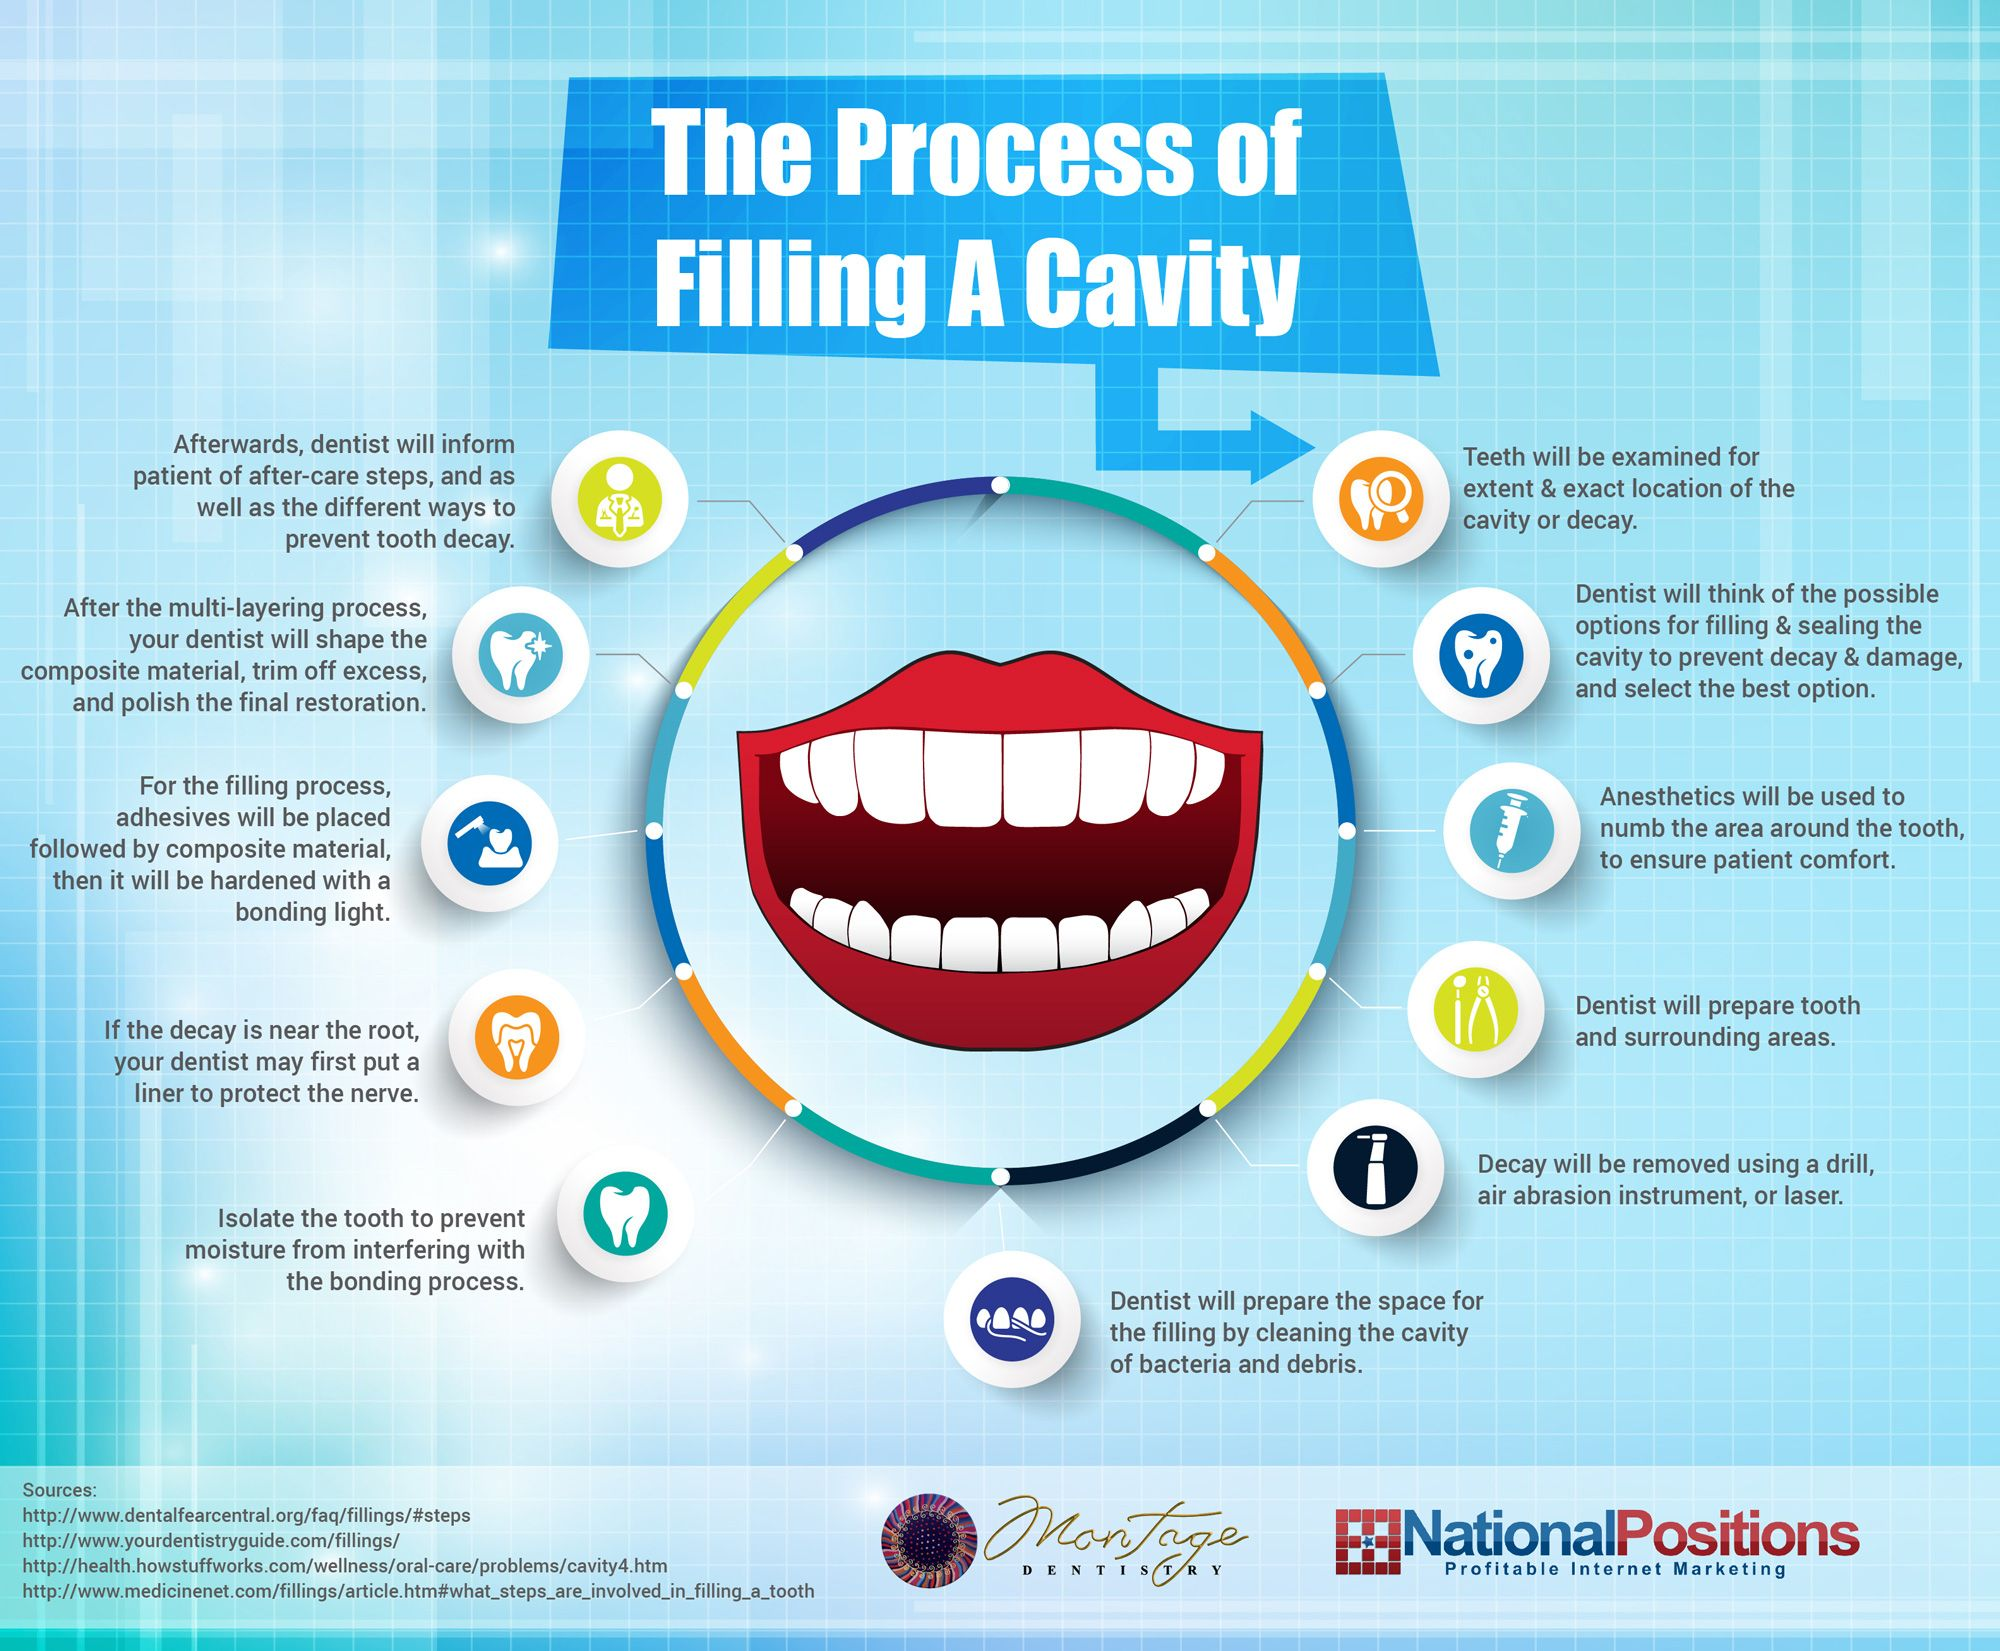 If you want to learn more about the process of filling a